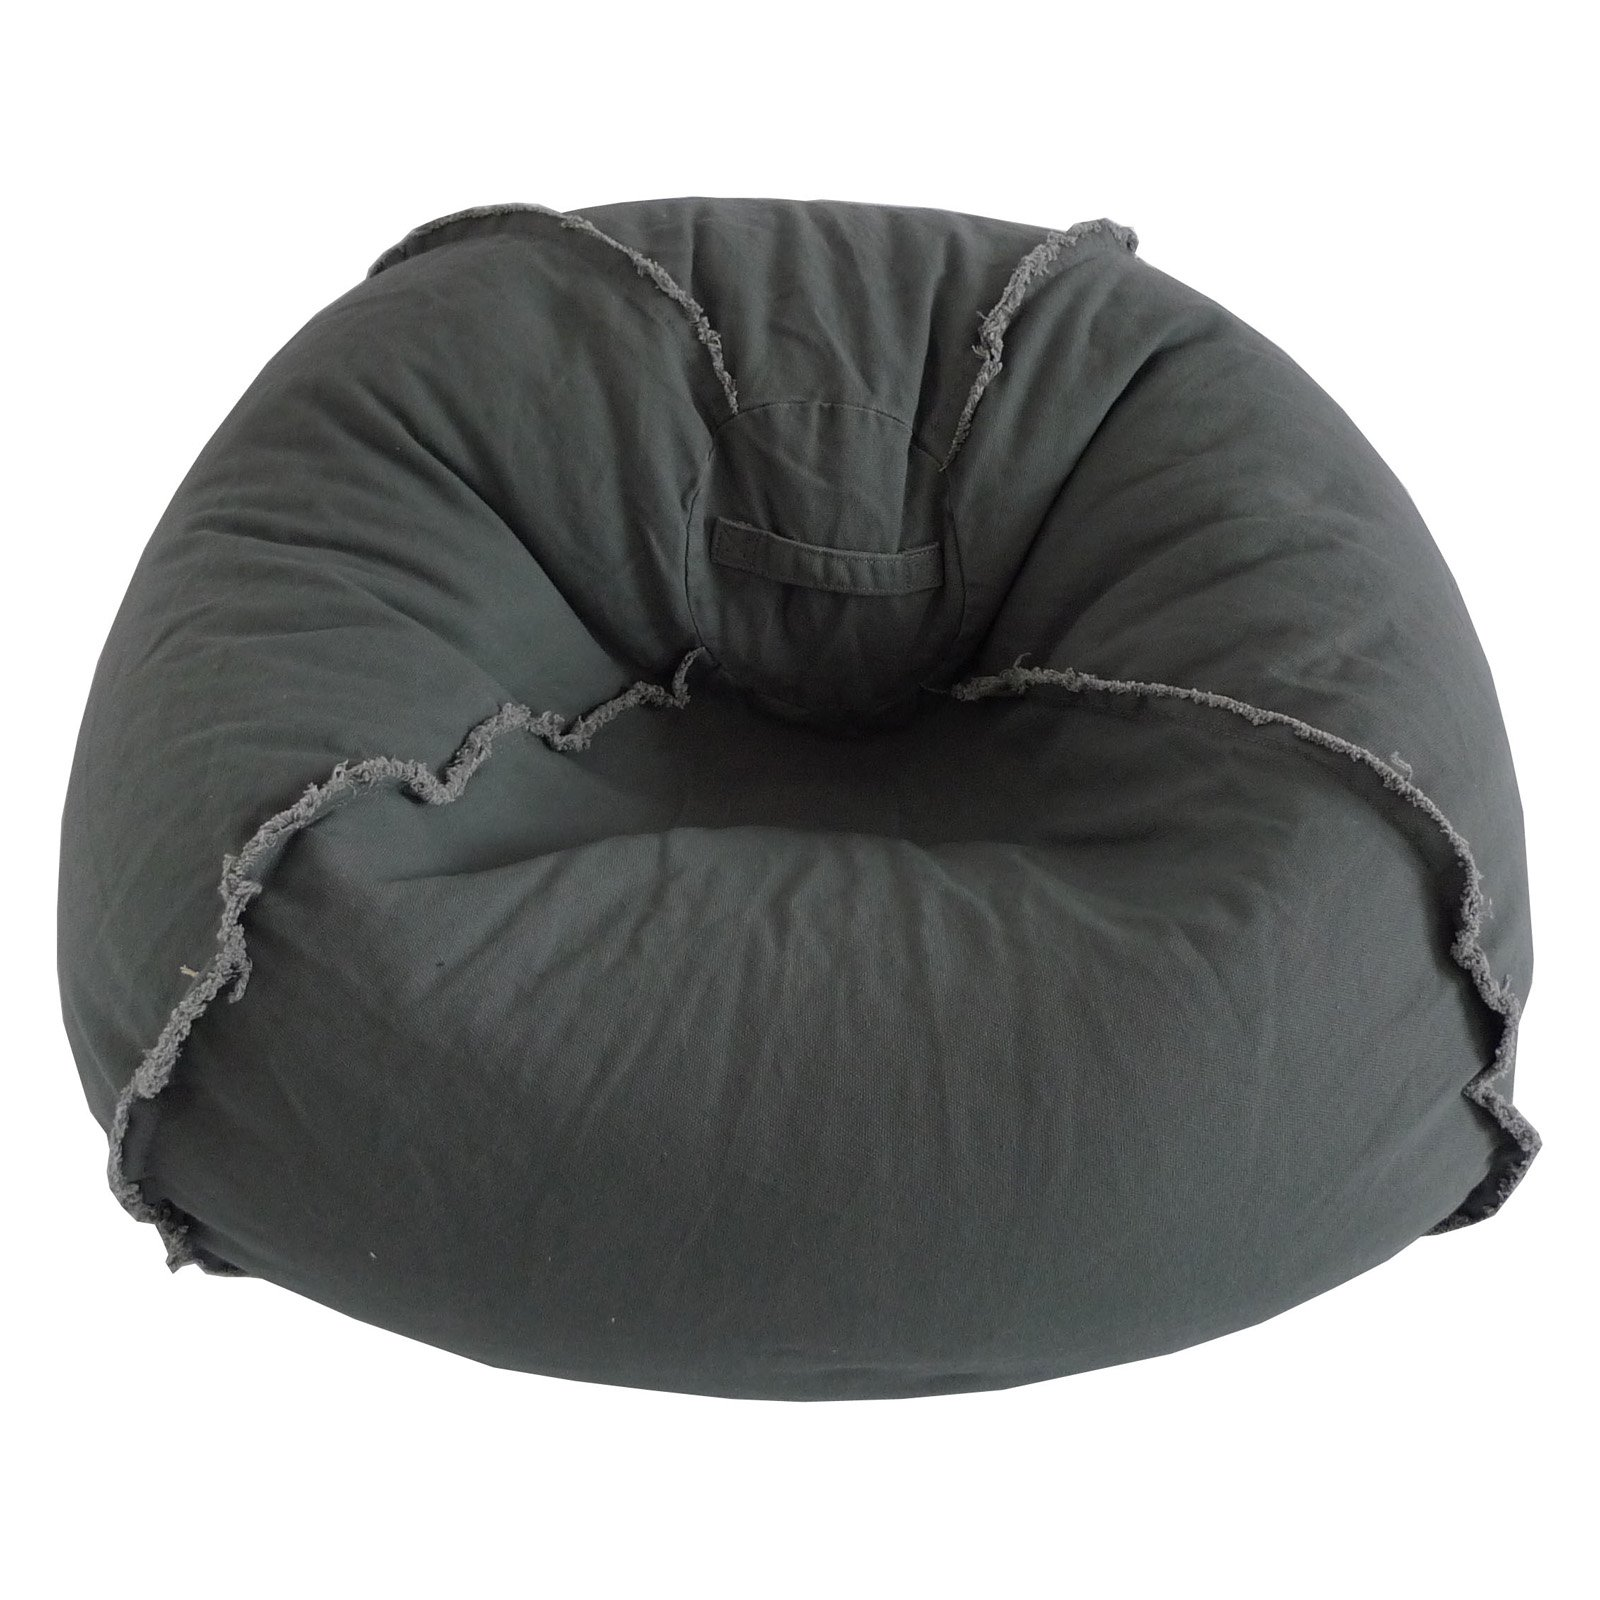 Large Canvas Bean Bag with Exposed Seams, Available in Multiple Colors